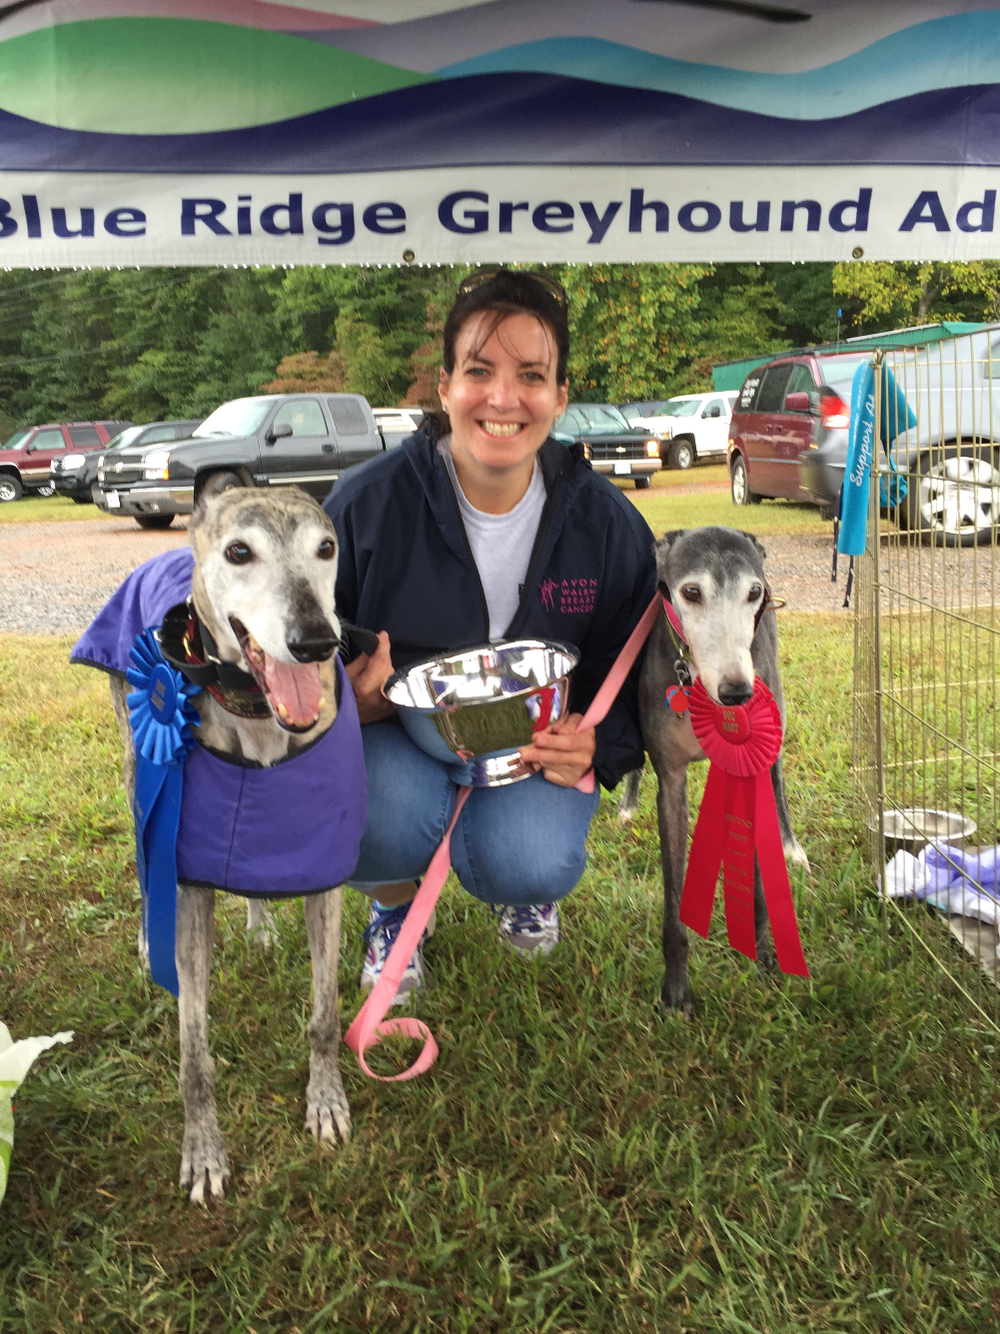 Gracie with her blue ribbon and silver Best in Show bowl, and Lollipop with her red ribbon.